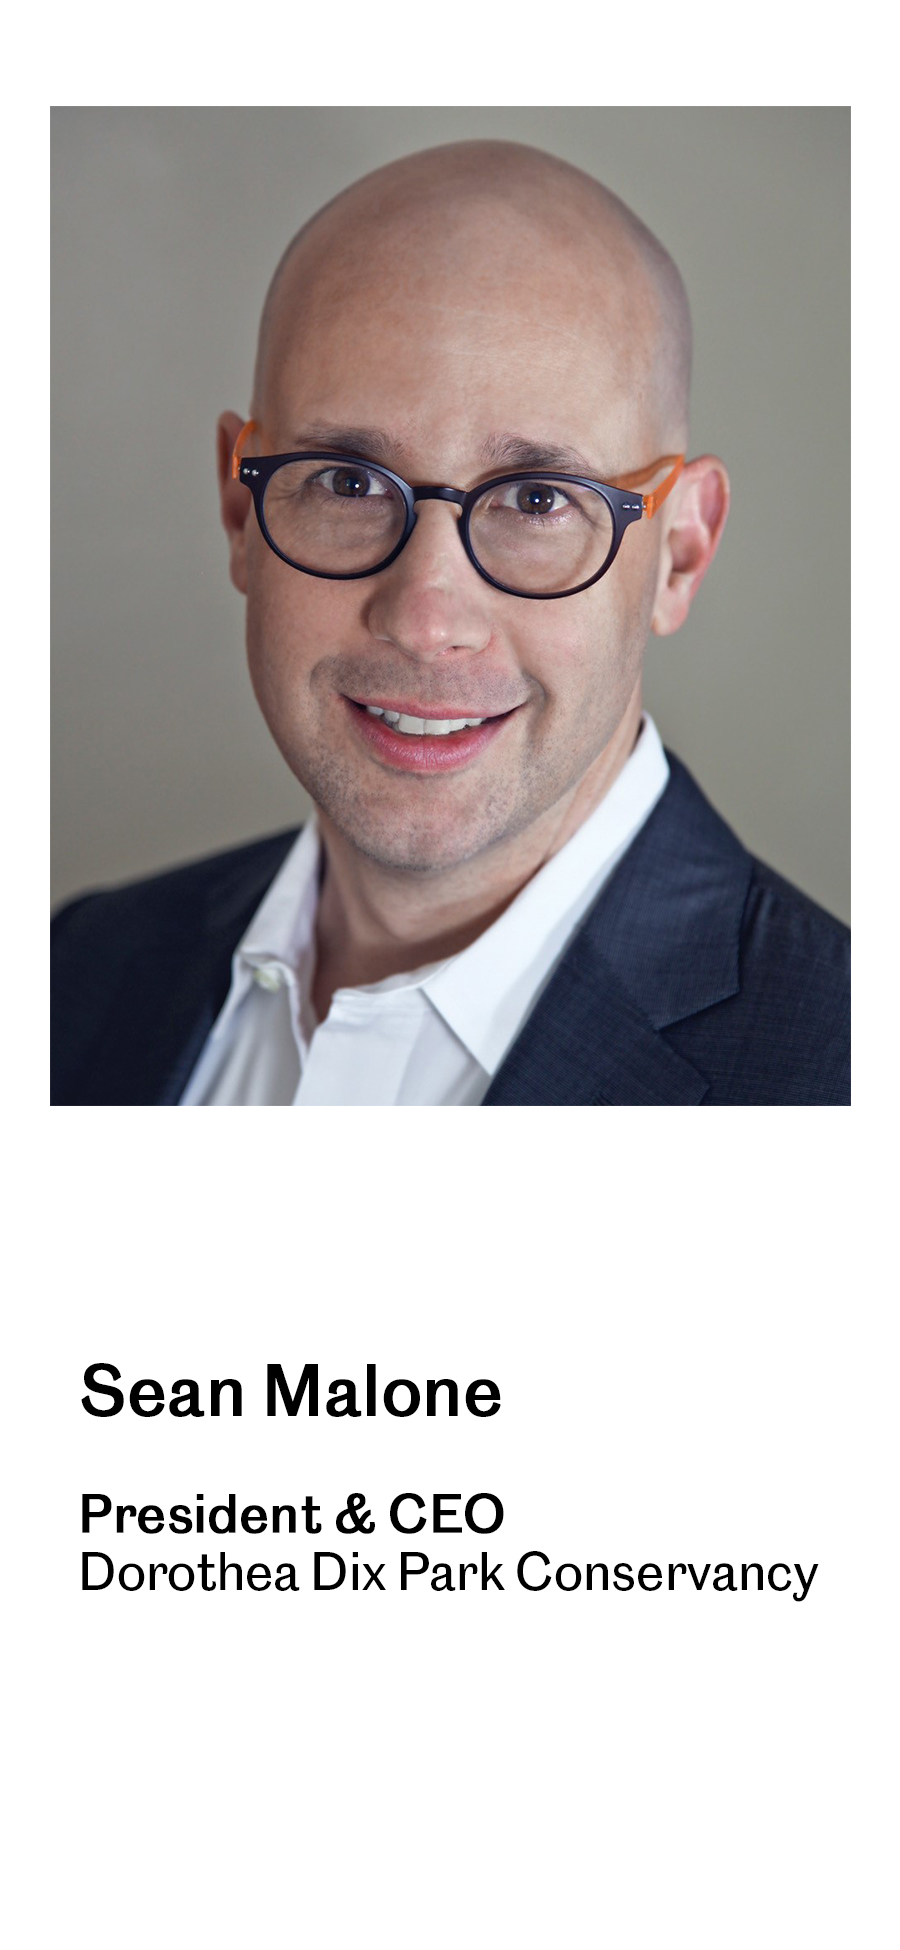 Sean Malone Headshot